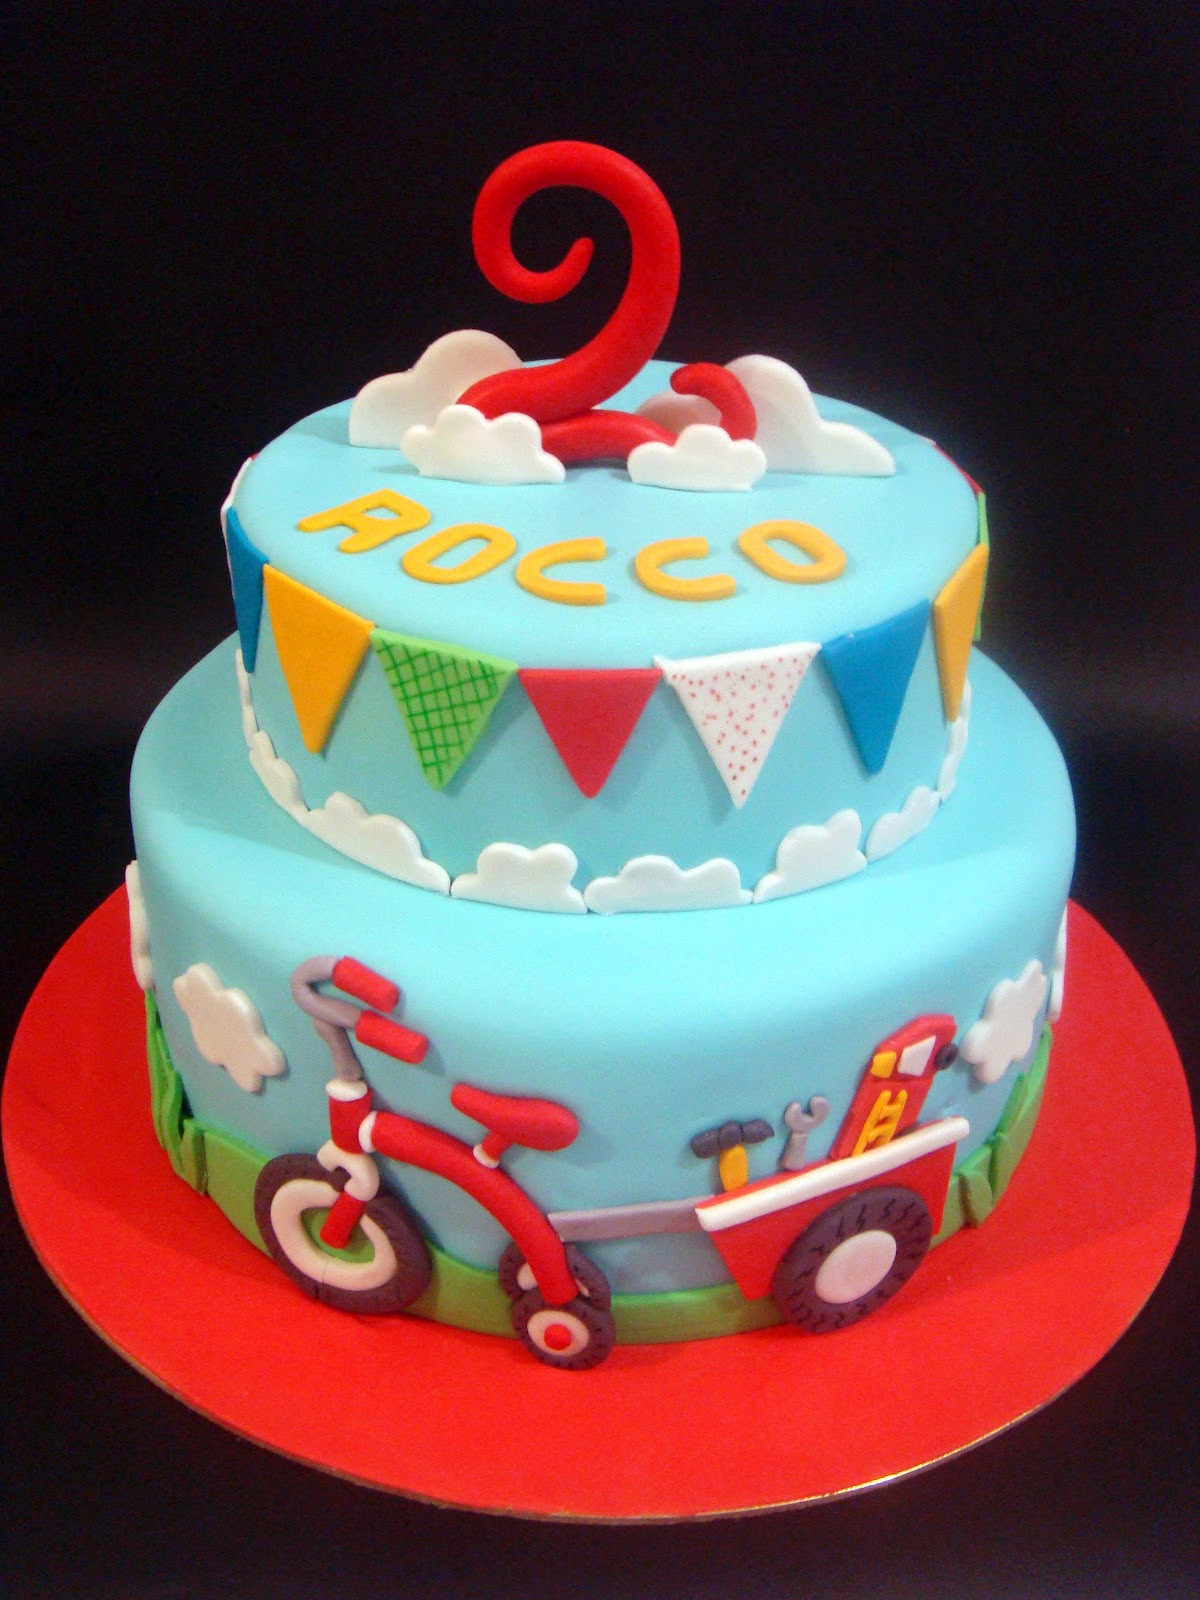 Birthday Cake For Boys  Birthday cakes for boys photo and pictures